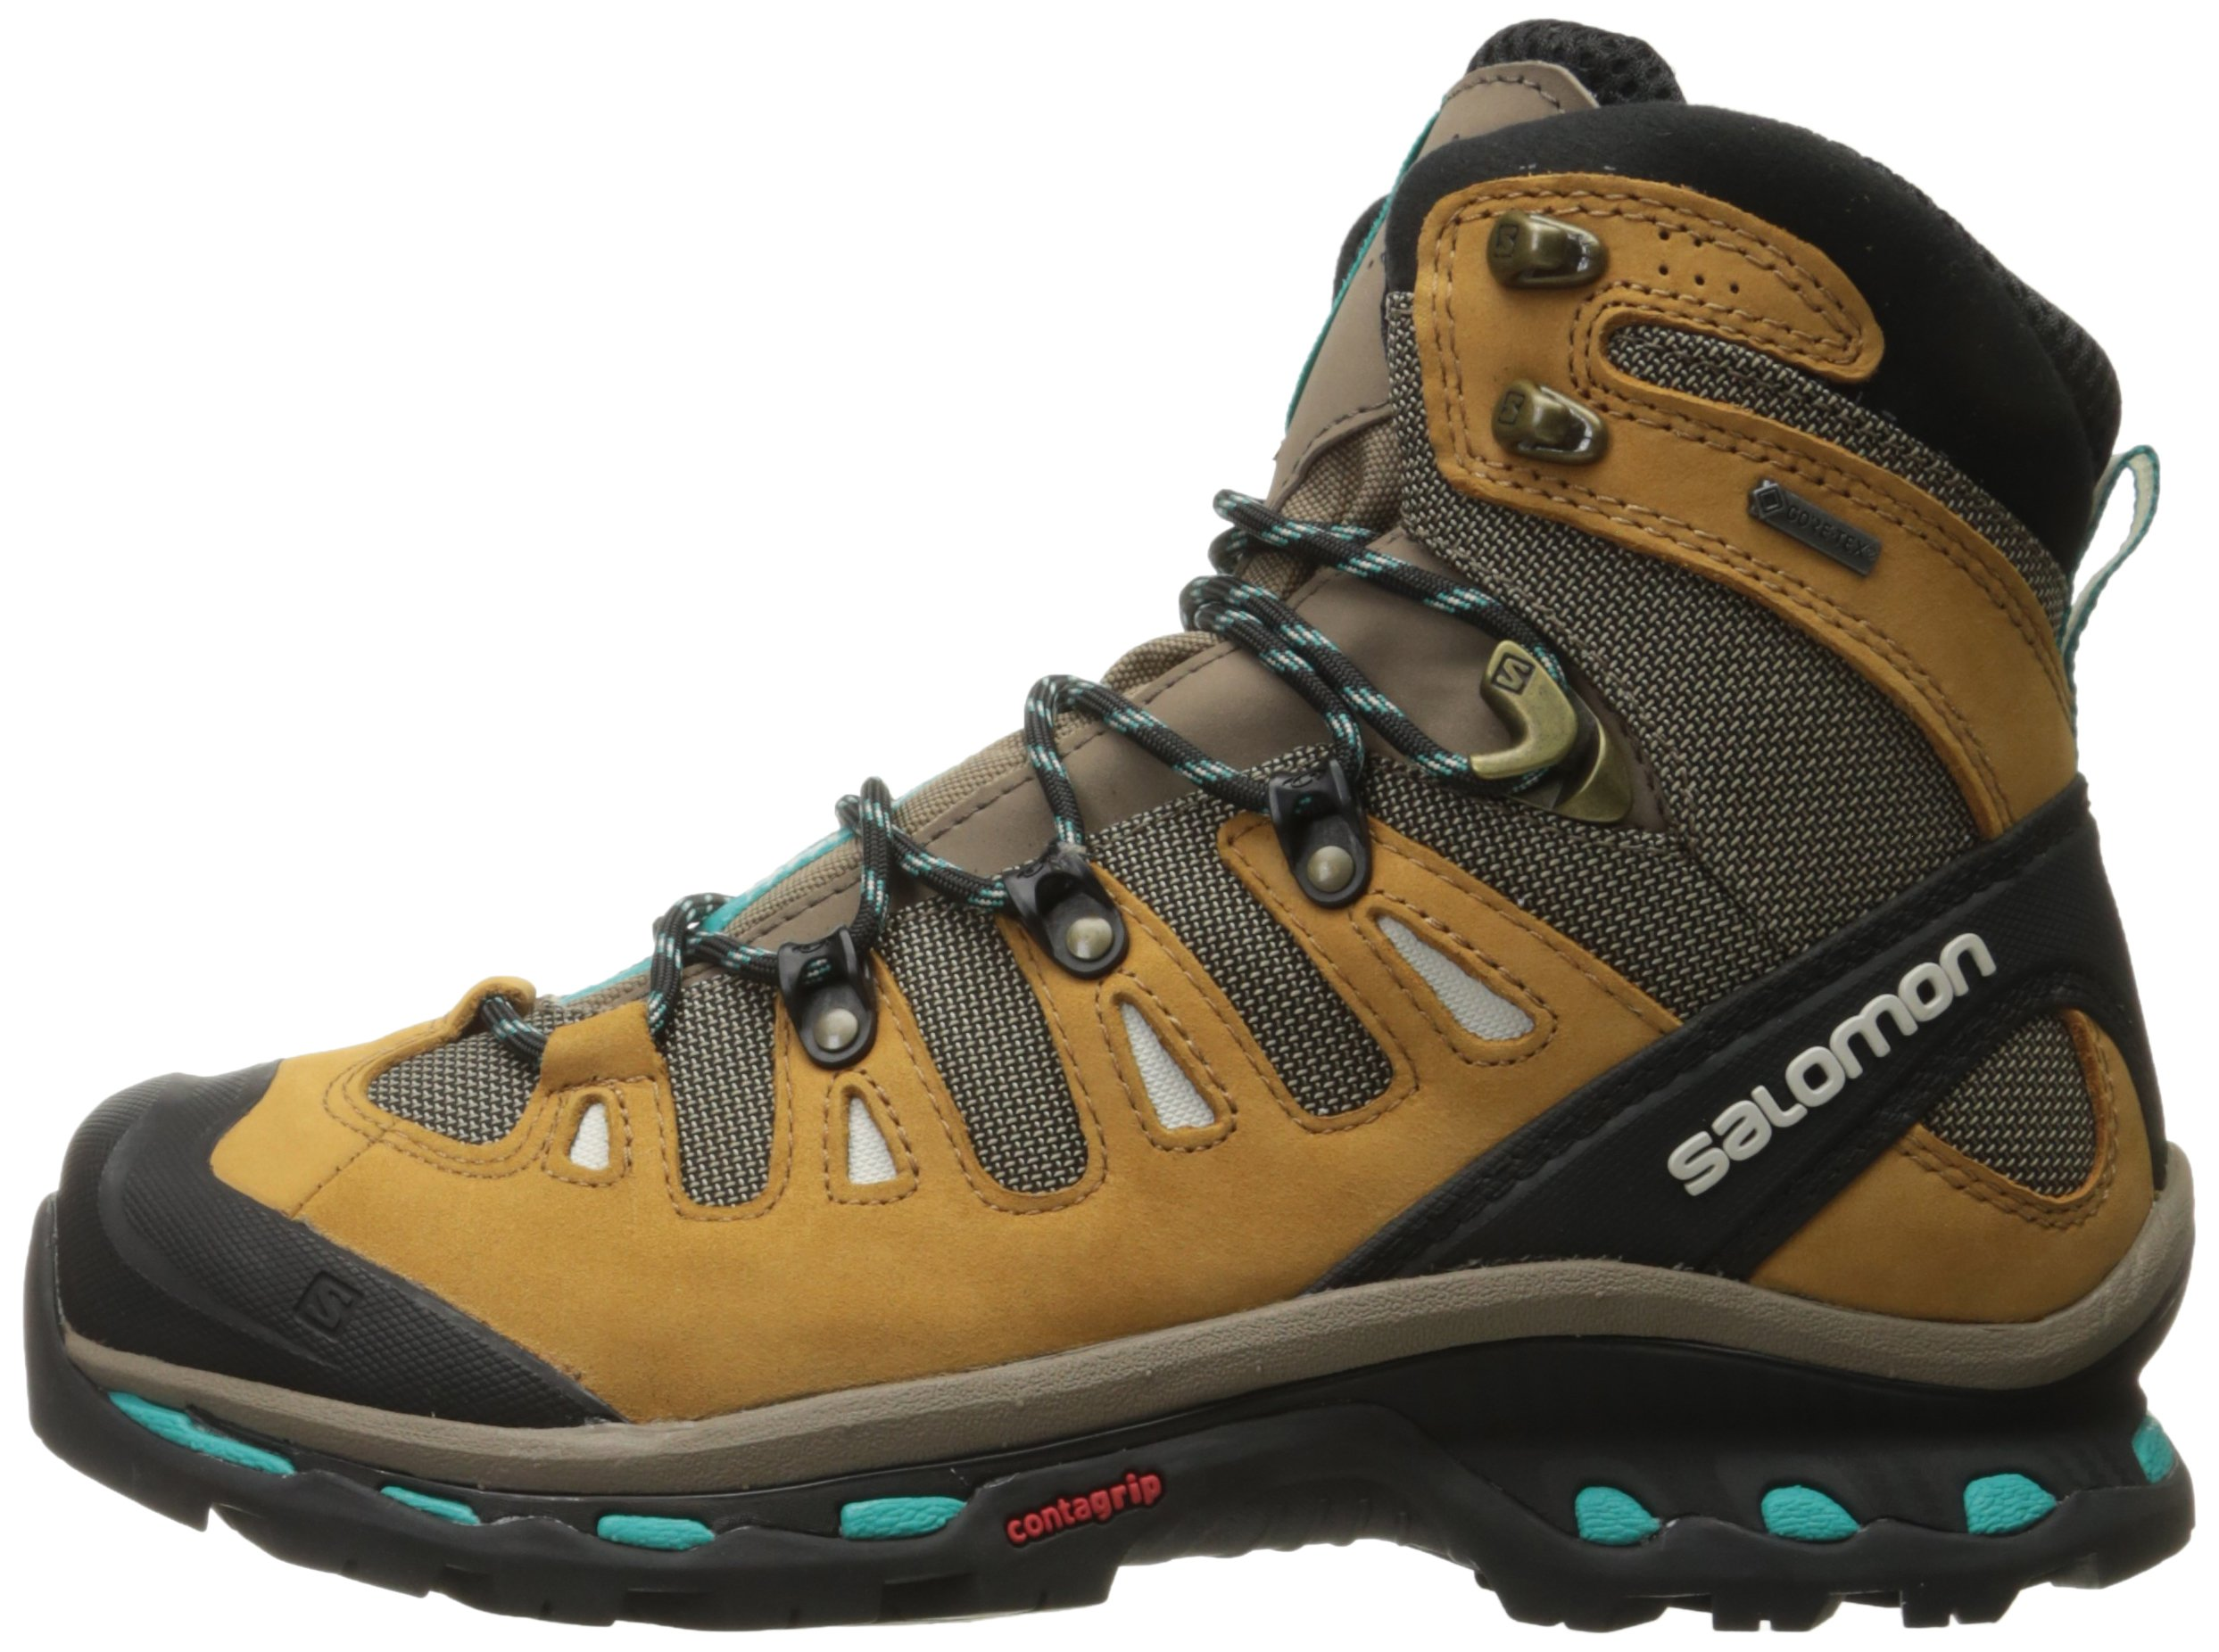 Salomon Women's Quest 4d 2 Gtx W Backpacking Boot, Shrew/Camel Gold Leather/Teal Blue Fabric, 8.5 M US by Salomon (Image #5)